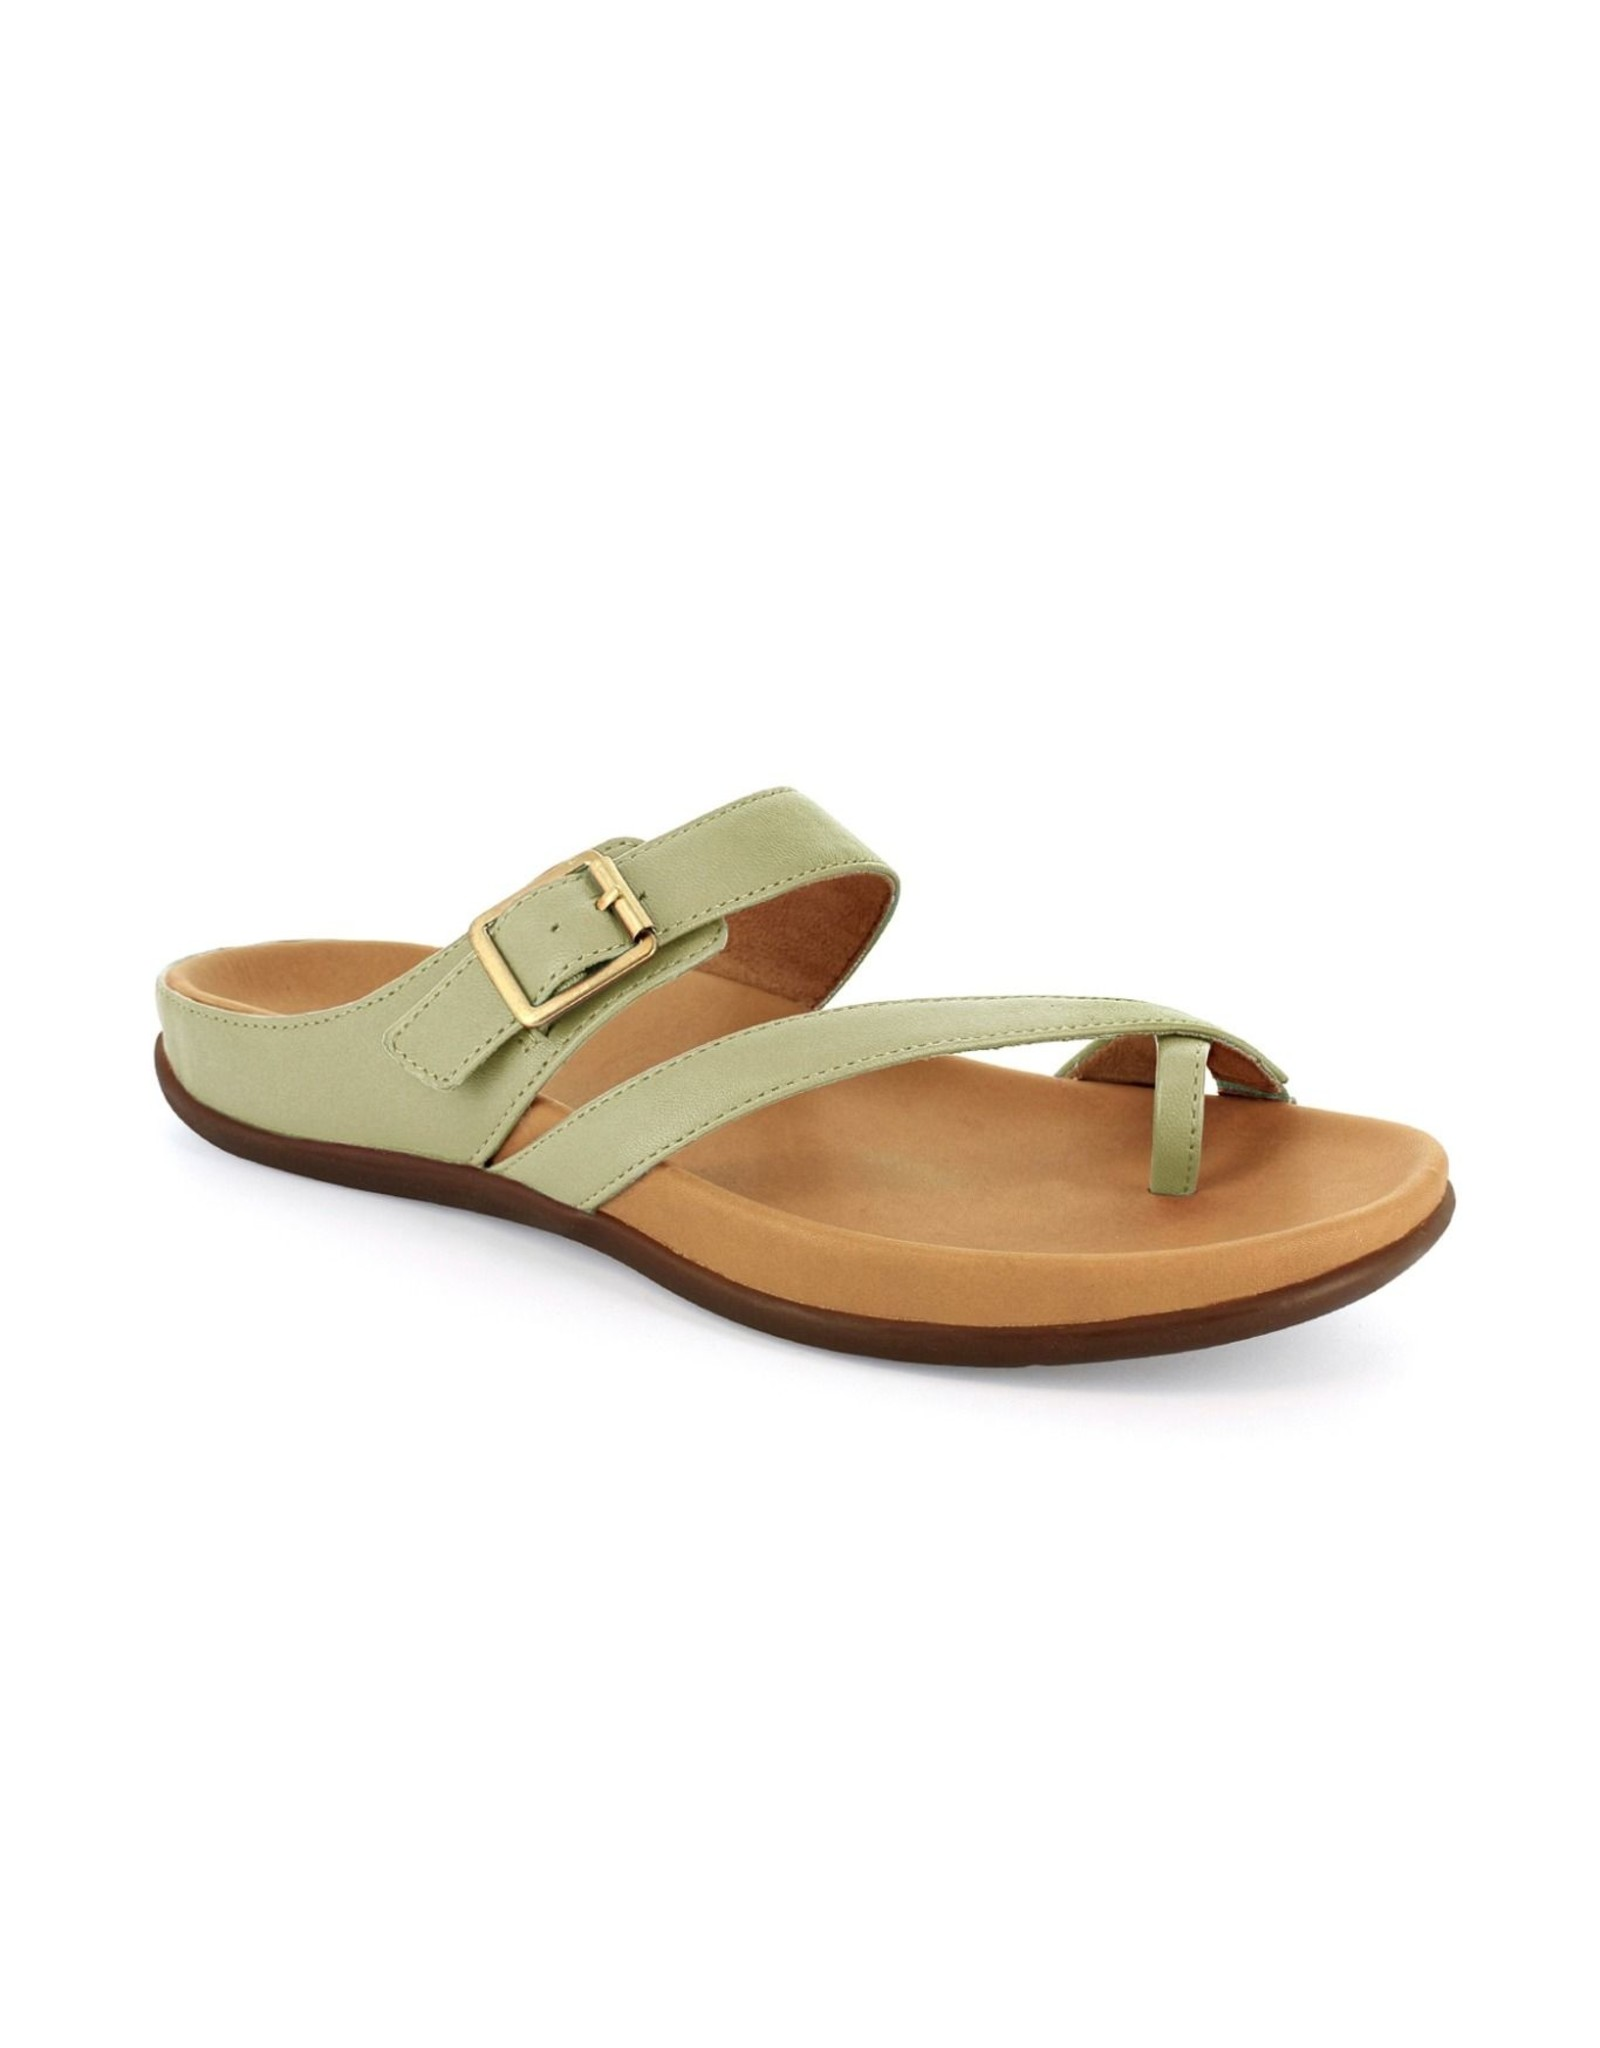 WOMEN'S NUSA-SAGE GREEN